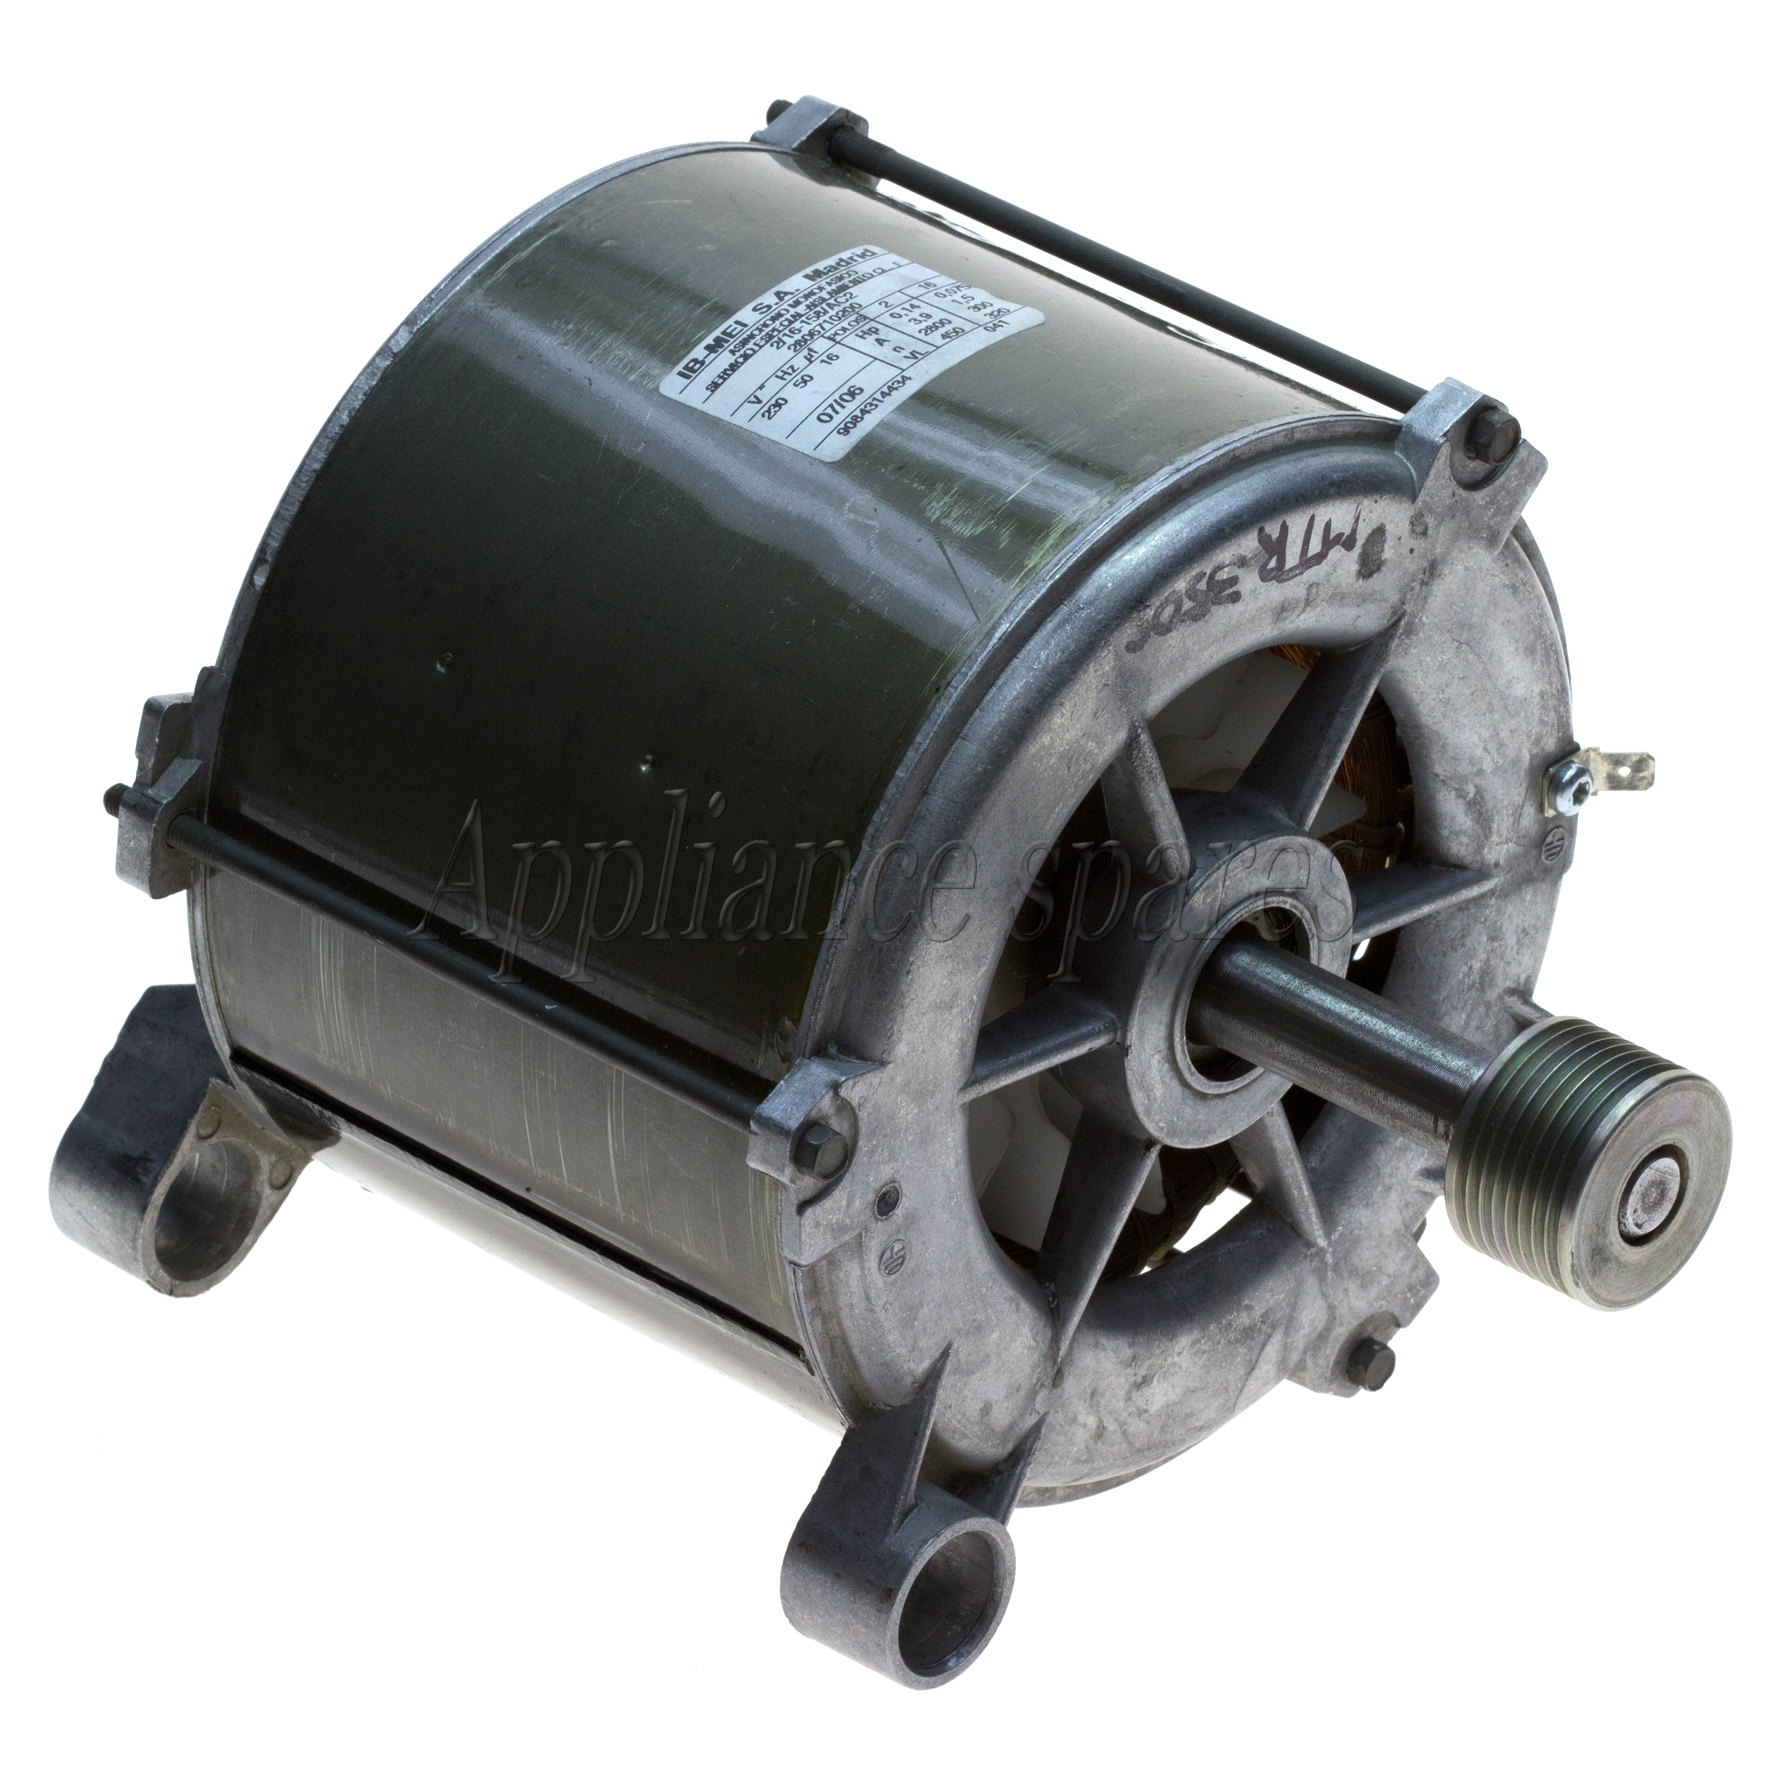 Defy Front Loader Washing Machine Main Motor With 35mm